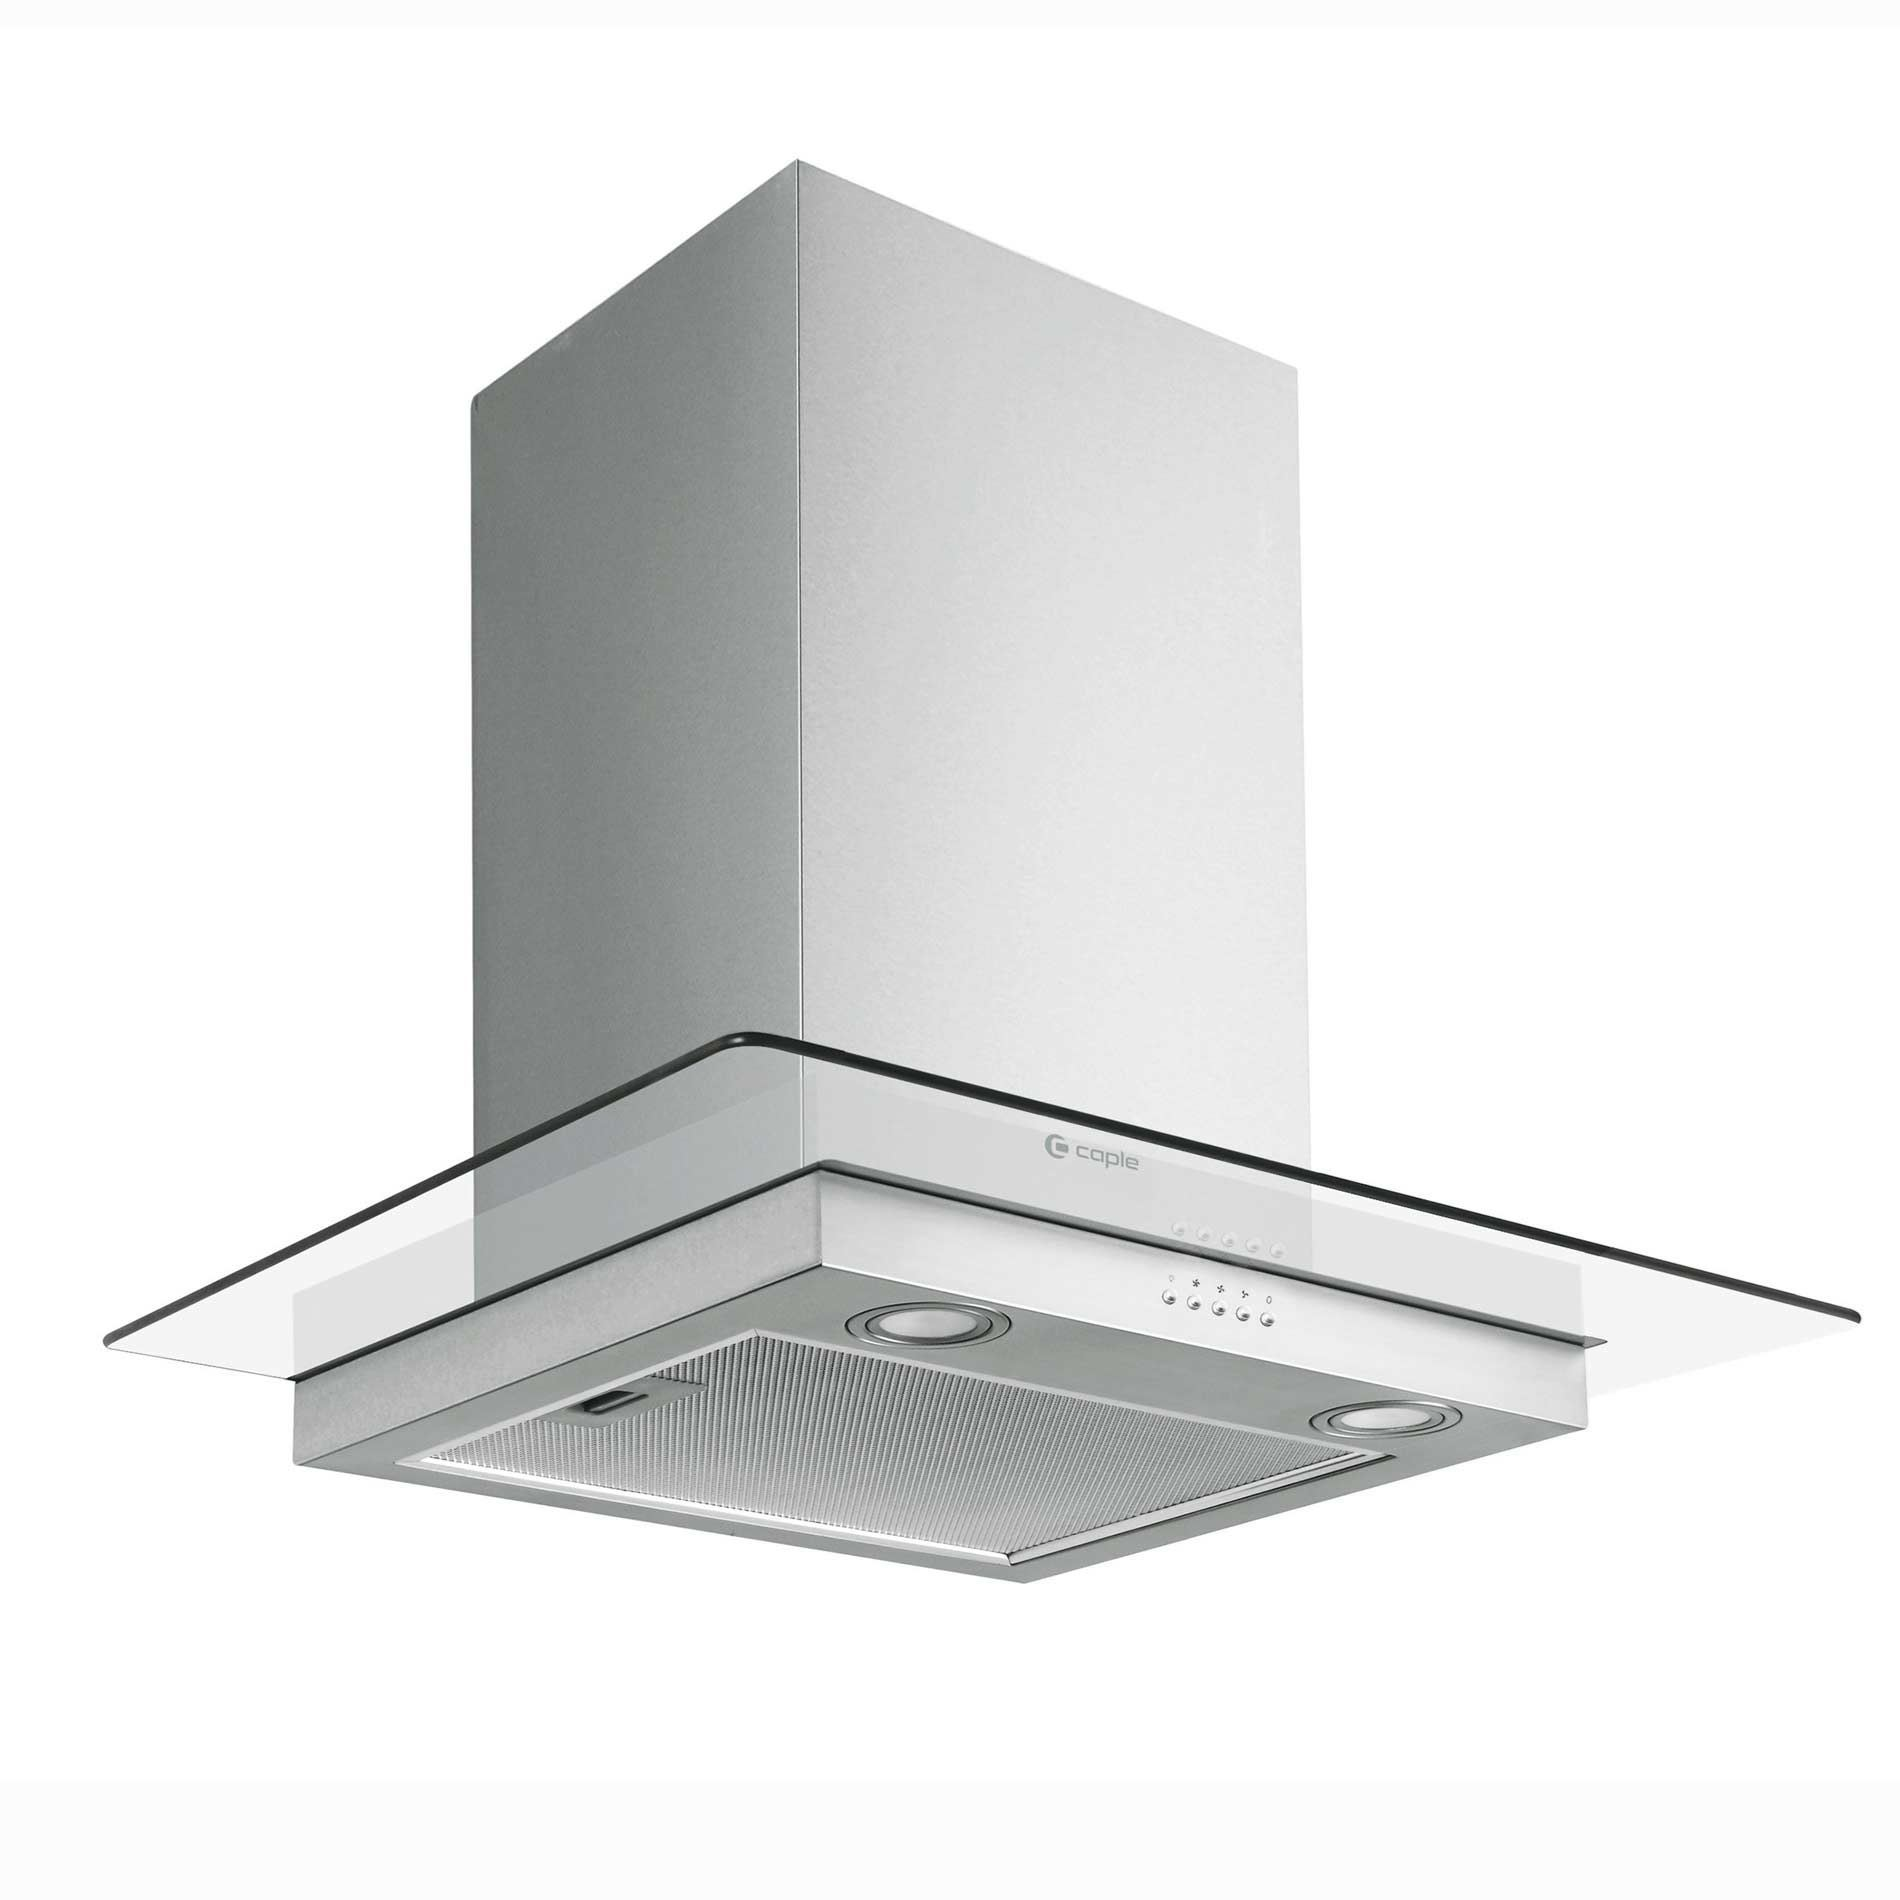 Picture of FGC720 Chimney Cooker Hood Stainless Steel